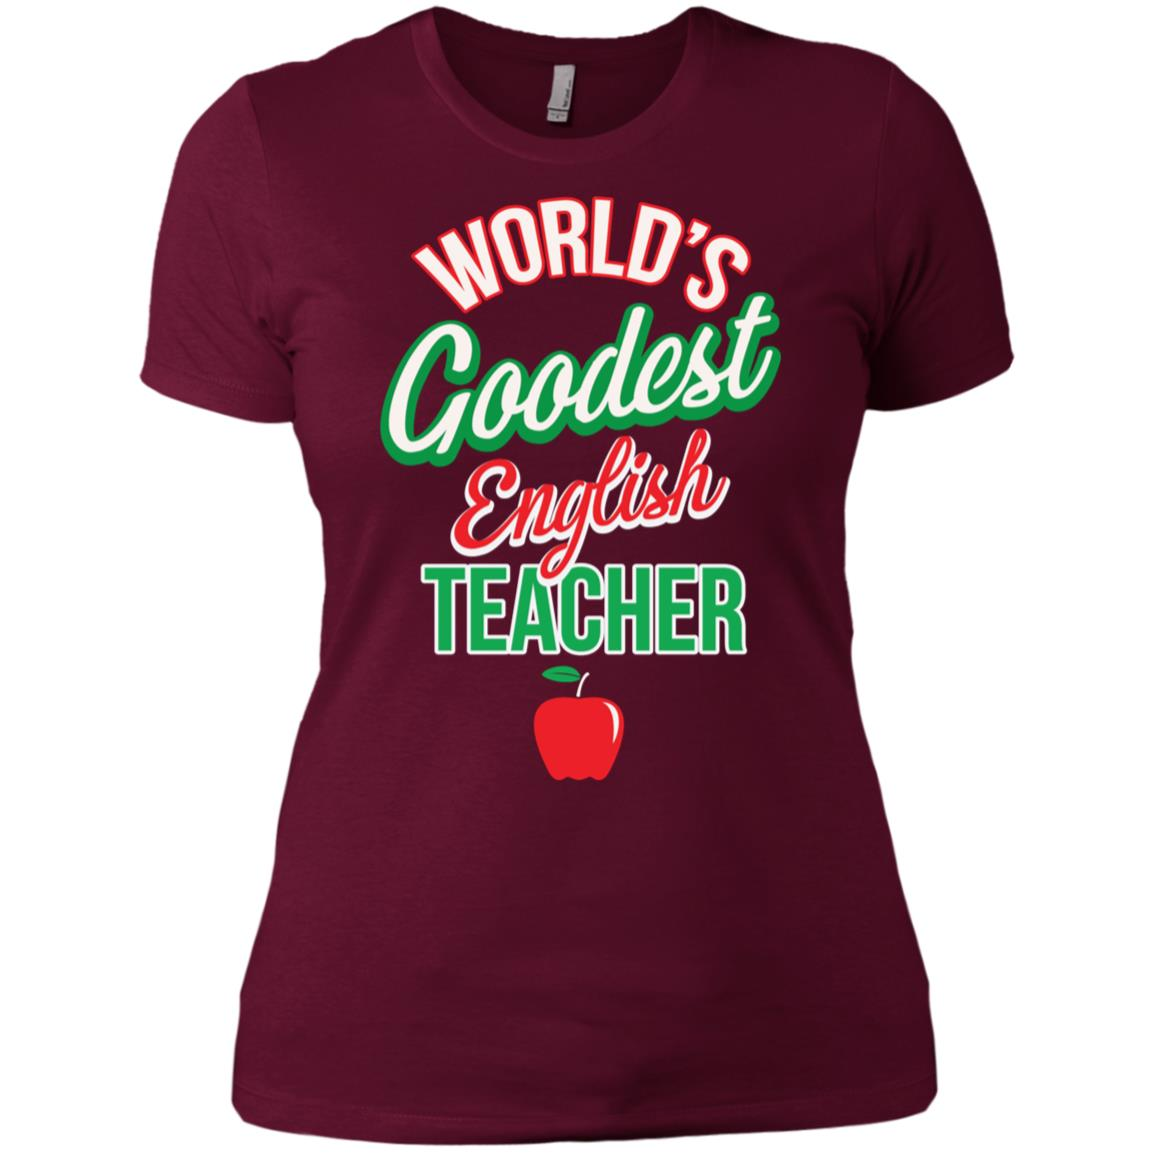 World's Goodest English Teacher Grammar Error Gift Ls Tee Women Short Sleeve